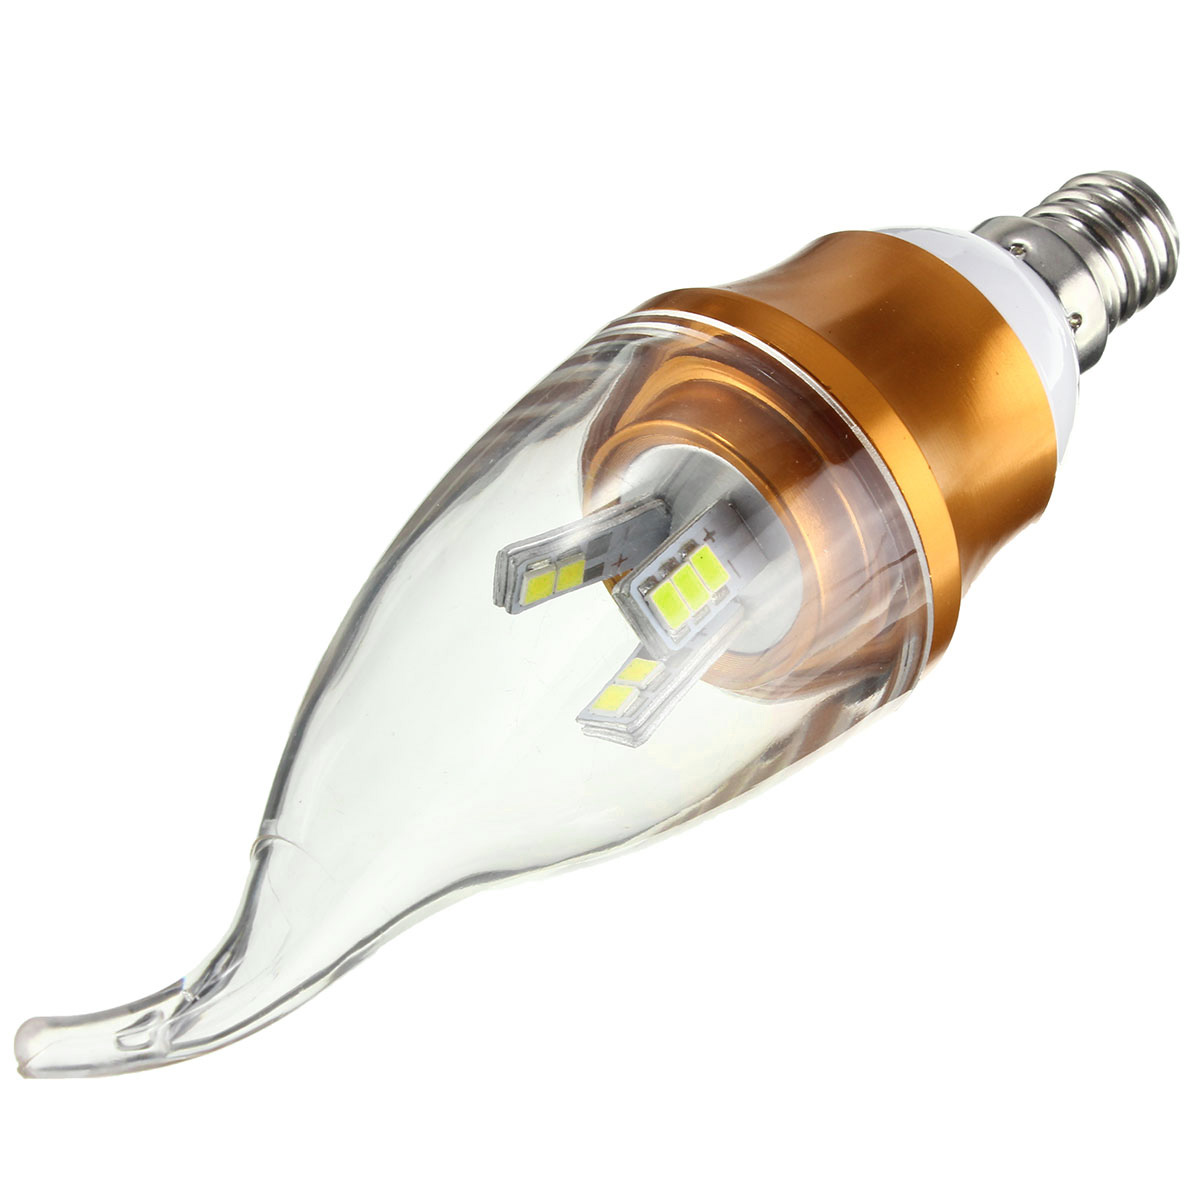 Dimmable E27 E14 E12 B22 B15 3W 15 SMD 2835 LED Pure White Warm White Pull Tail Bulb AC220V